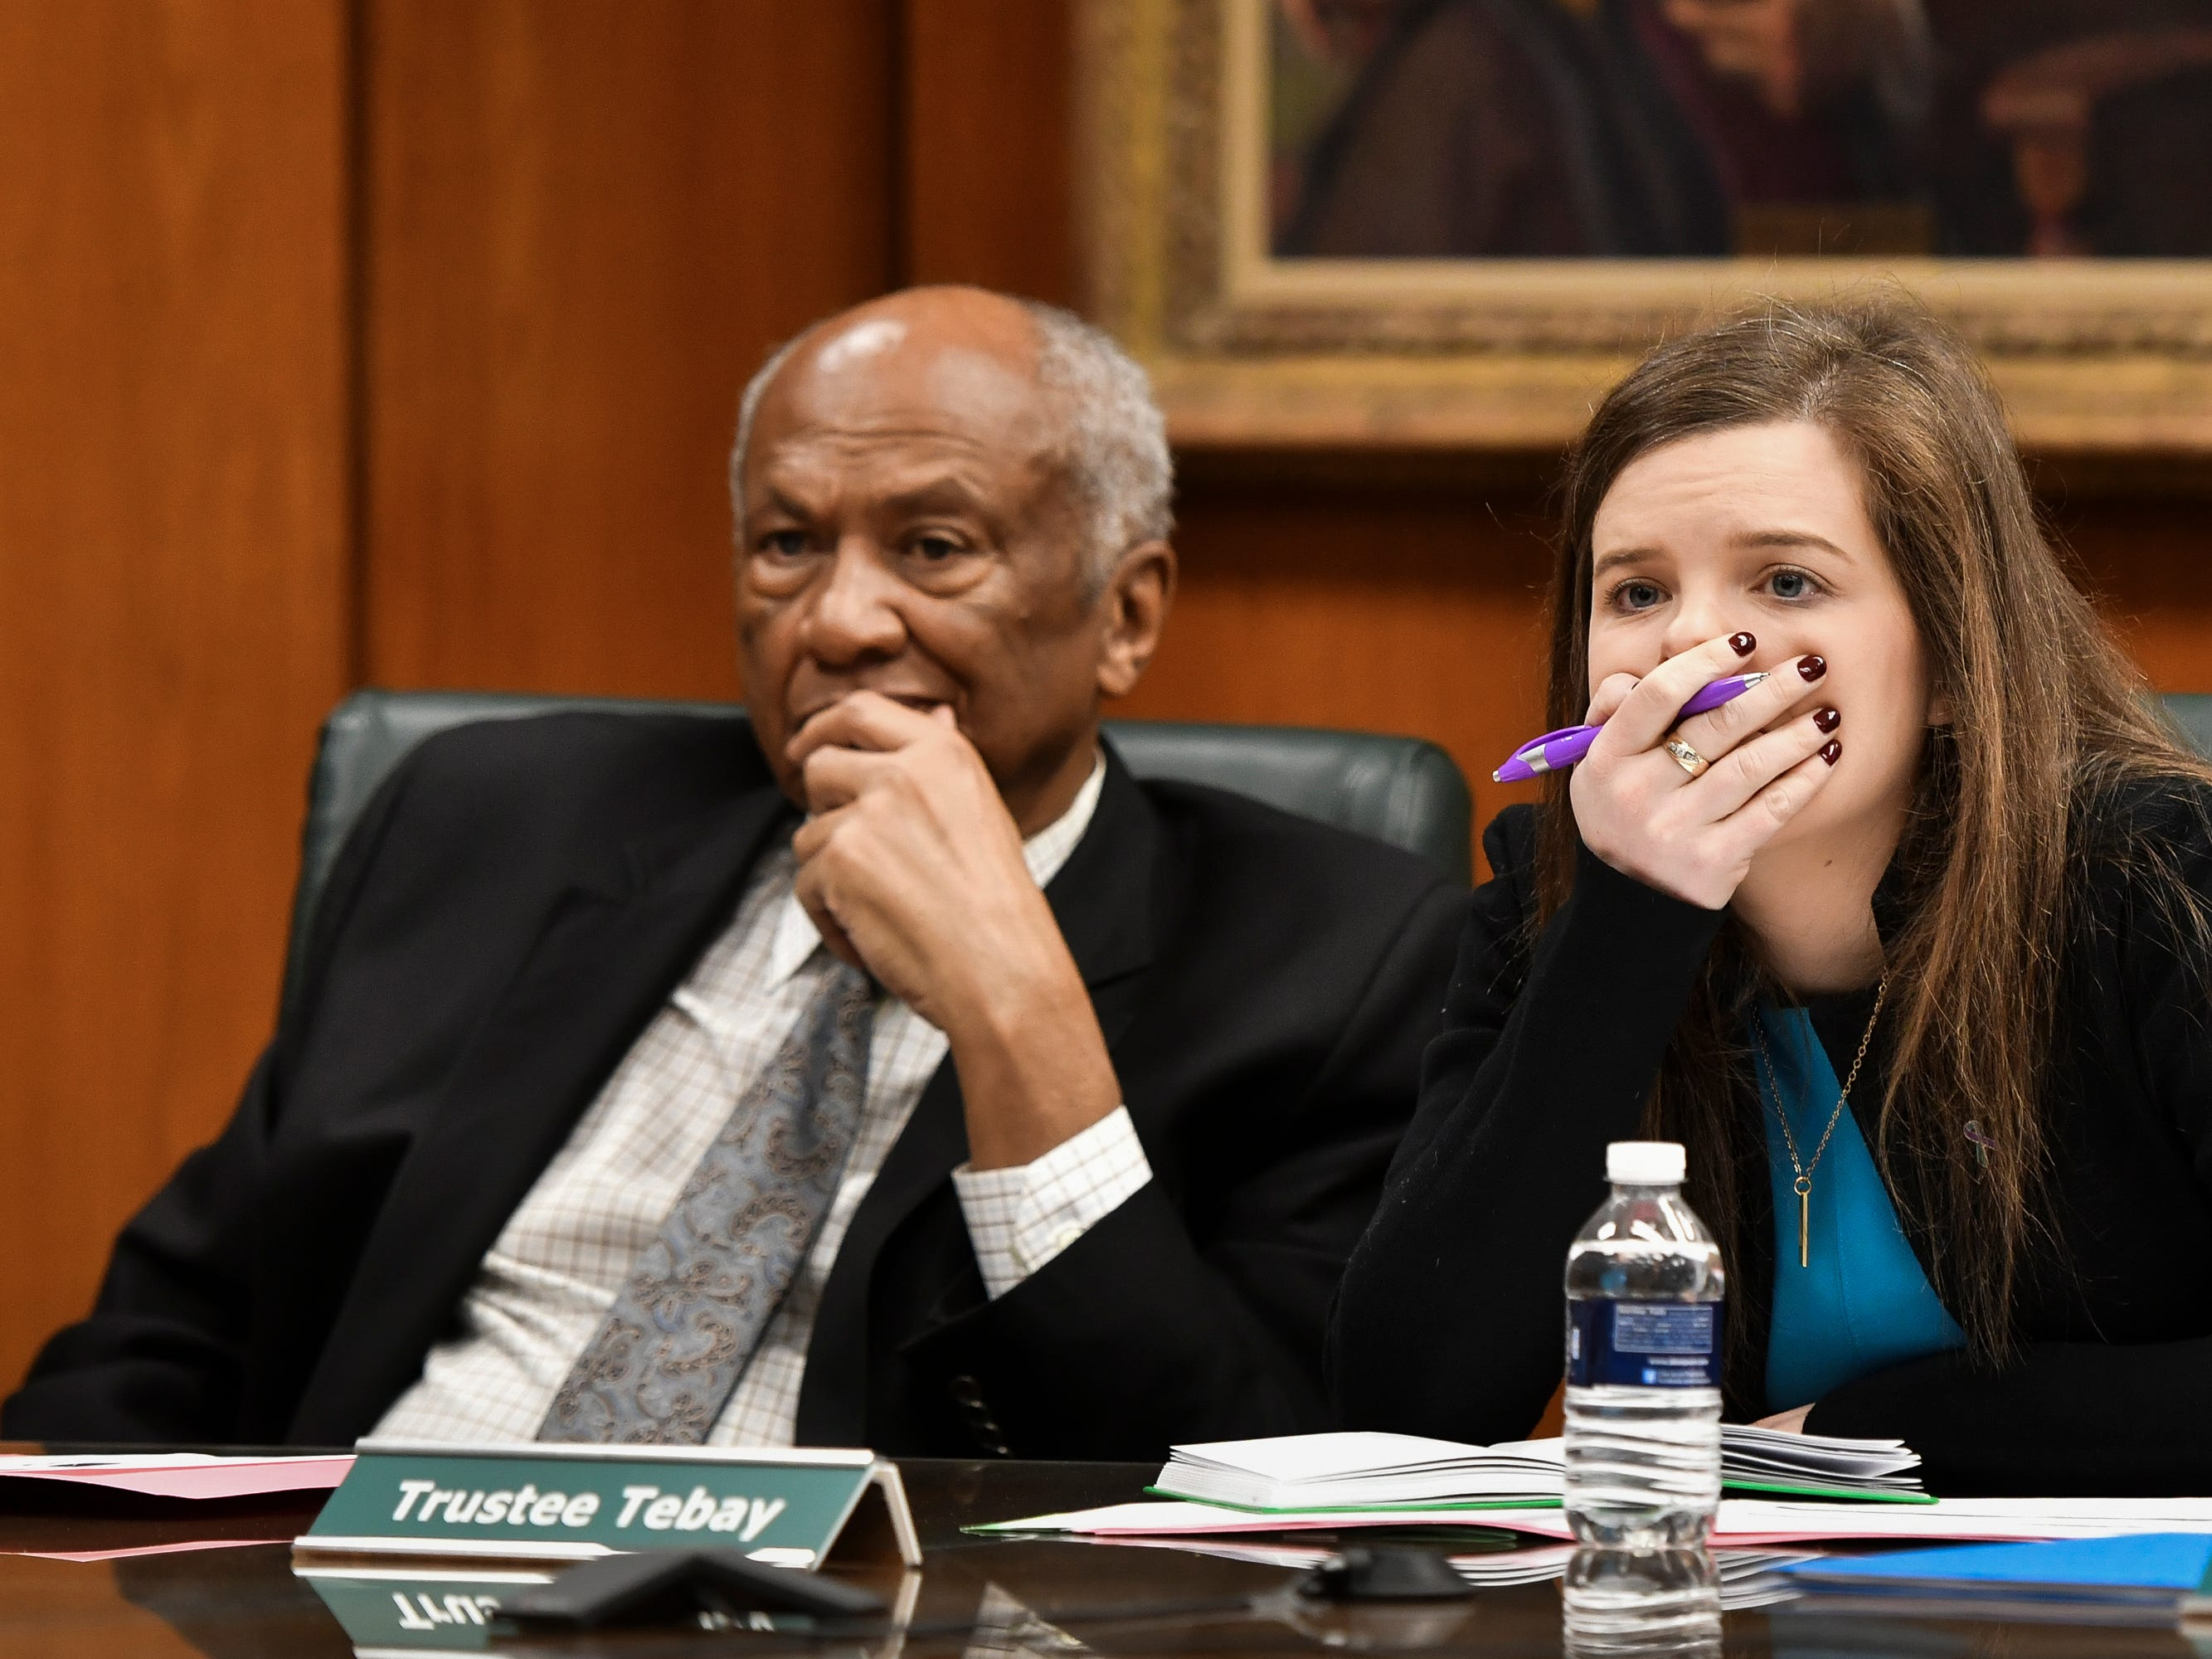 MSU Board of Trustees members Joel Ferguson, left, and Kelly Tebay listen as a victim of former MSU sportmedicine doctor talks about her abuse Friday, Feb. 15, 2019, at the public board meeting.